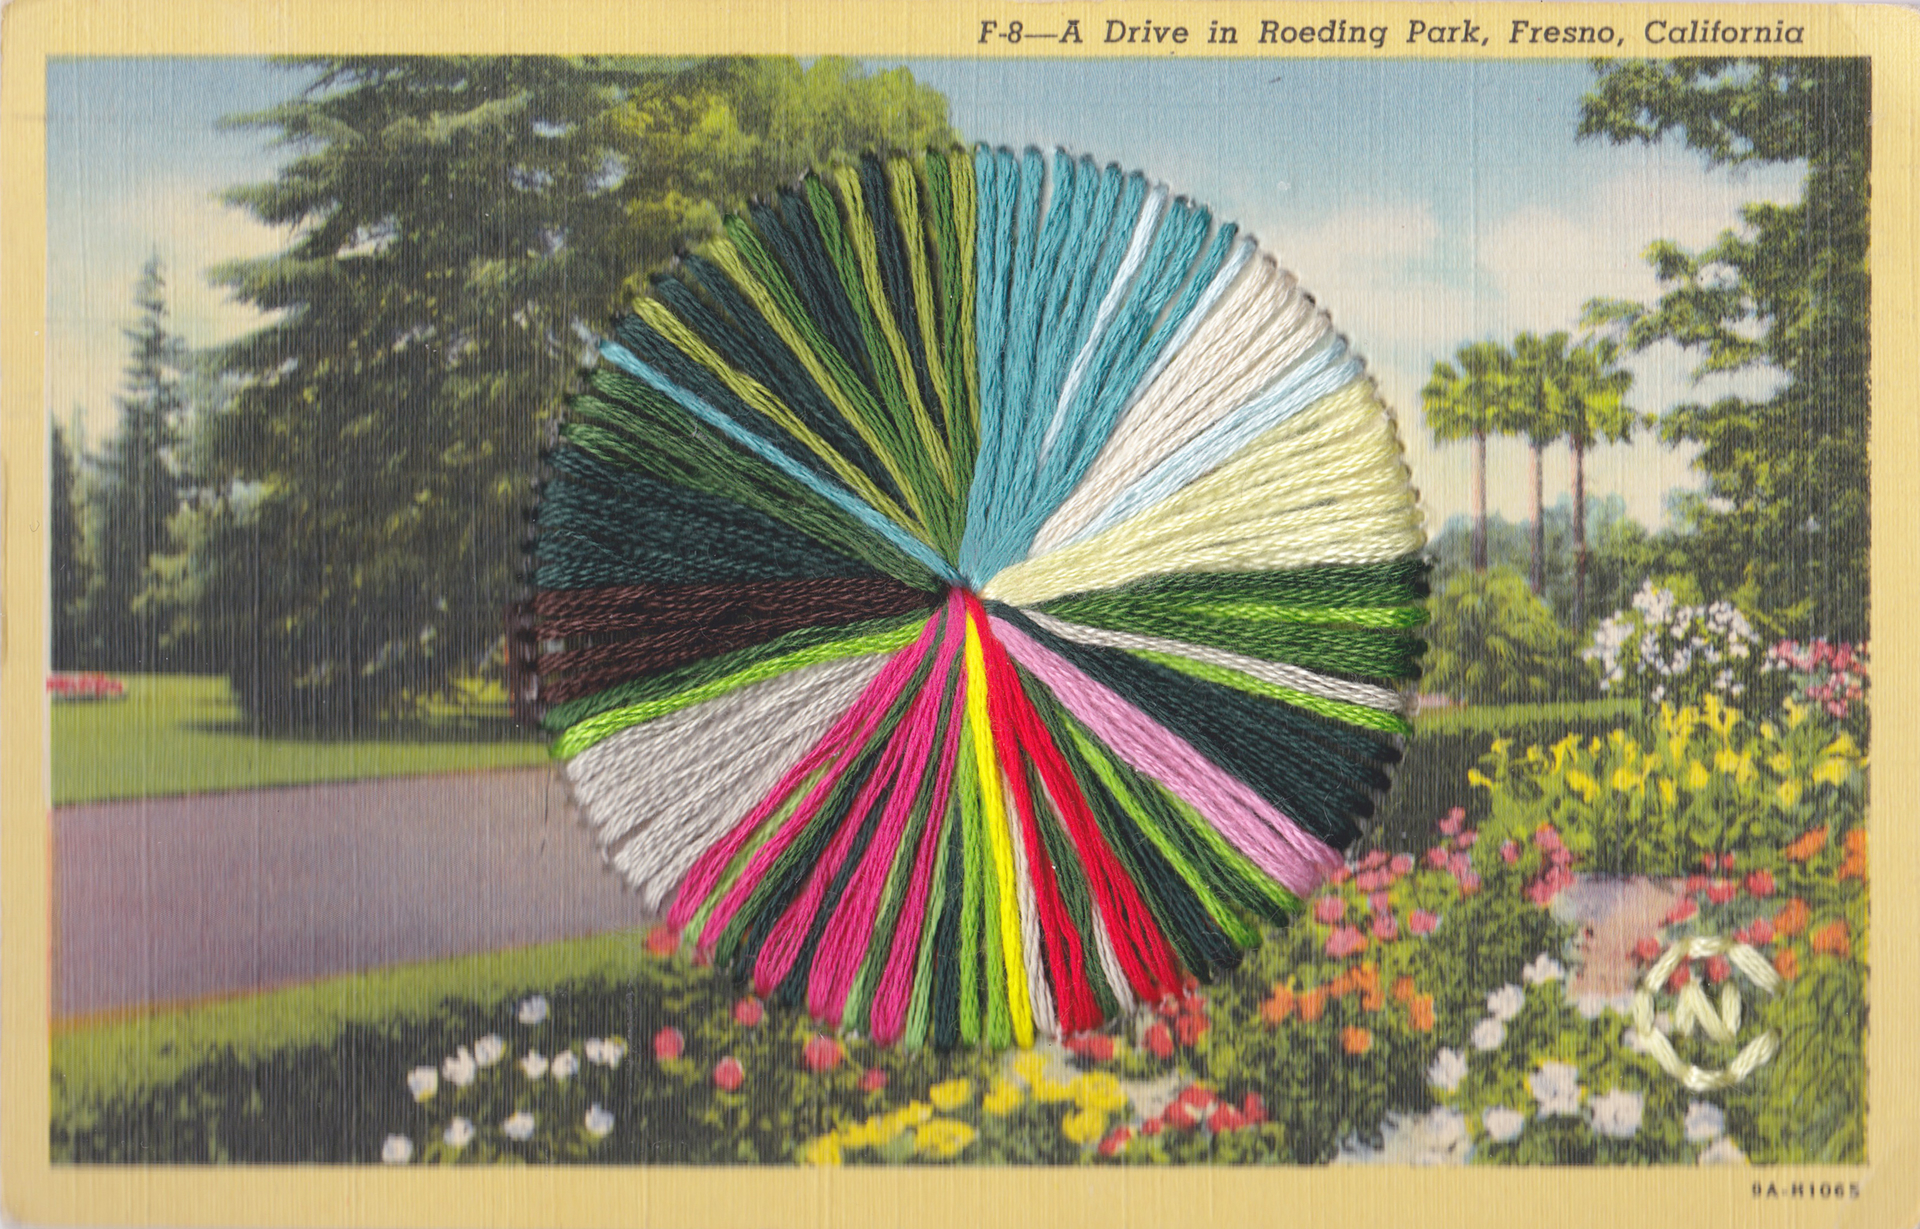 A Drive in Roeding Park by Natalie Ciccoricco